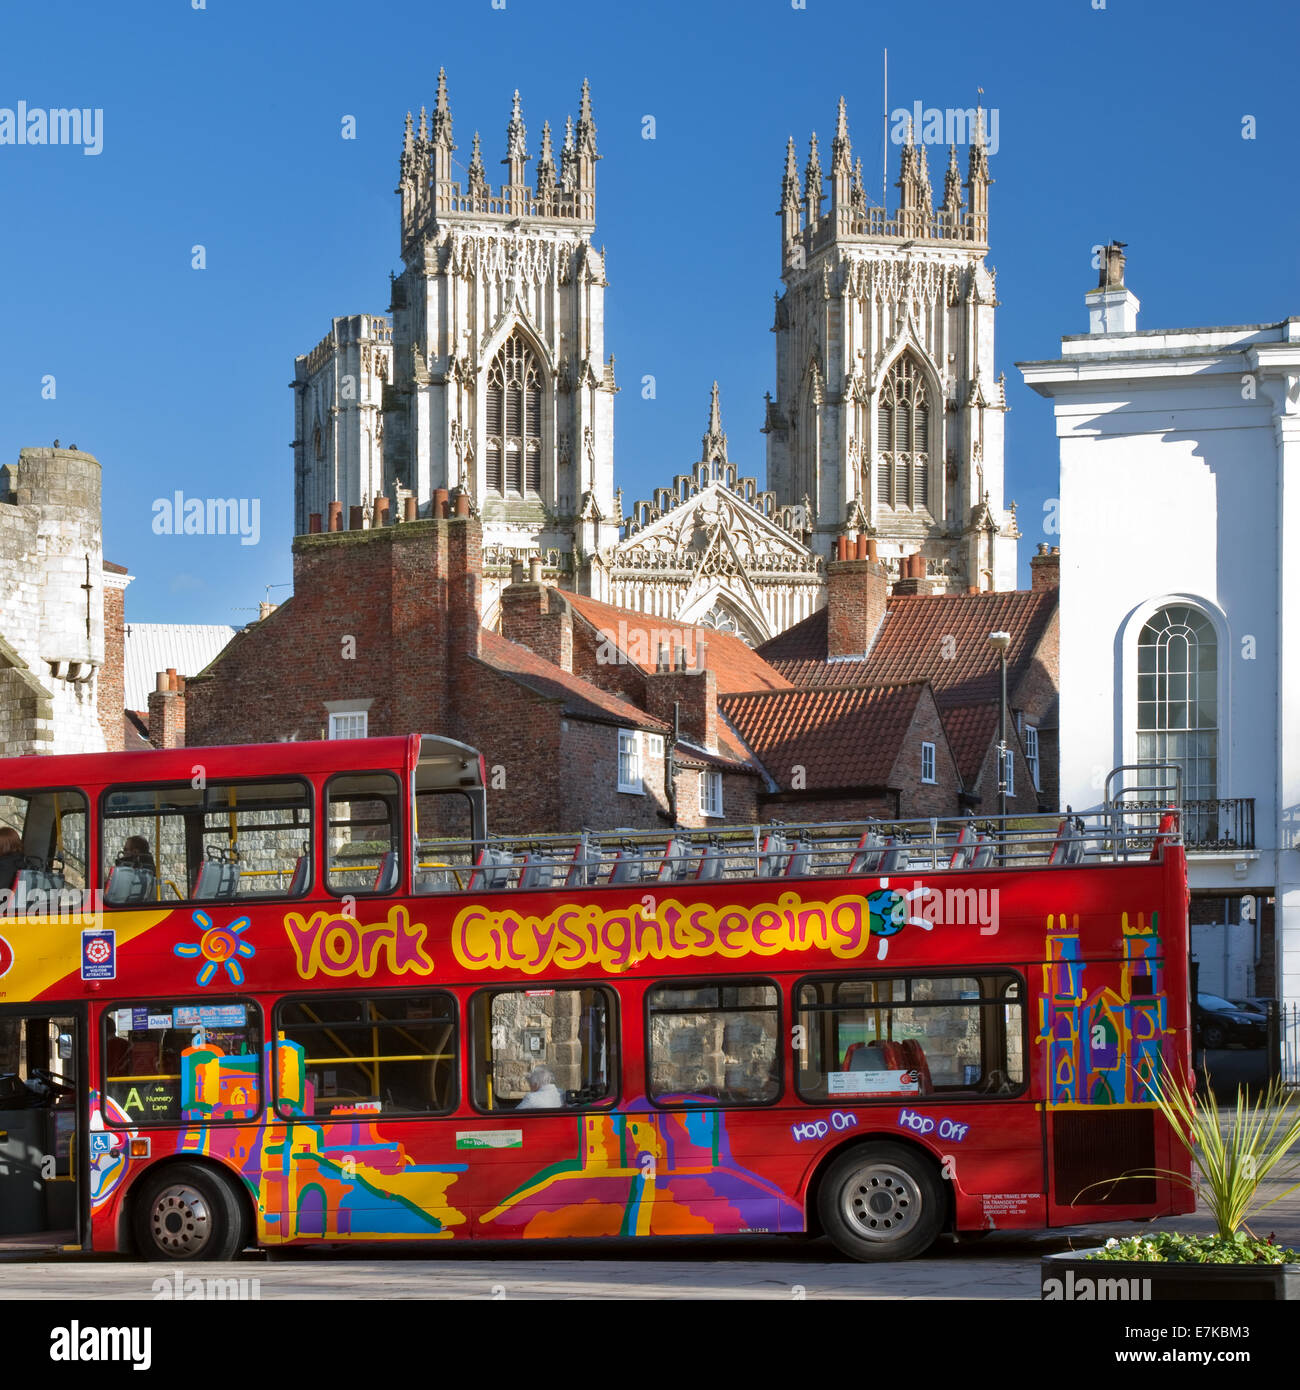 An open topped red double decker bus is parked in St Leonards Square York, with York Minster and Bootham Bar behind, - Stock Image